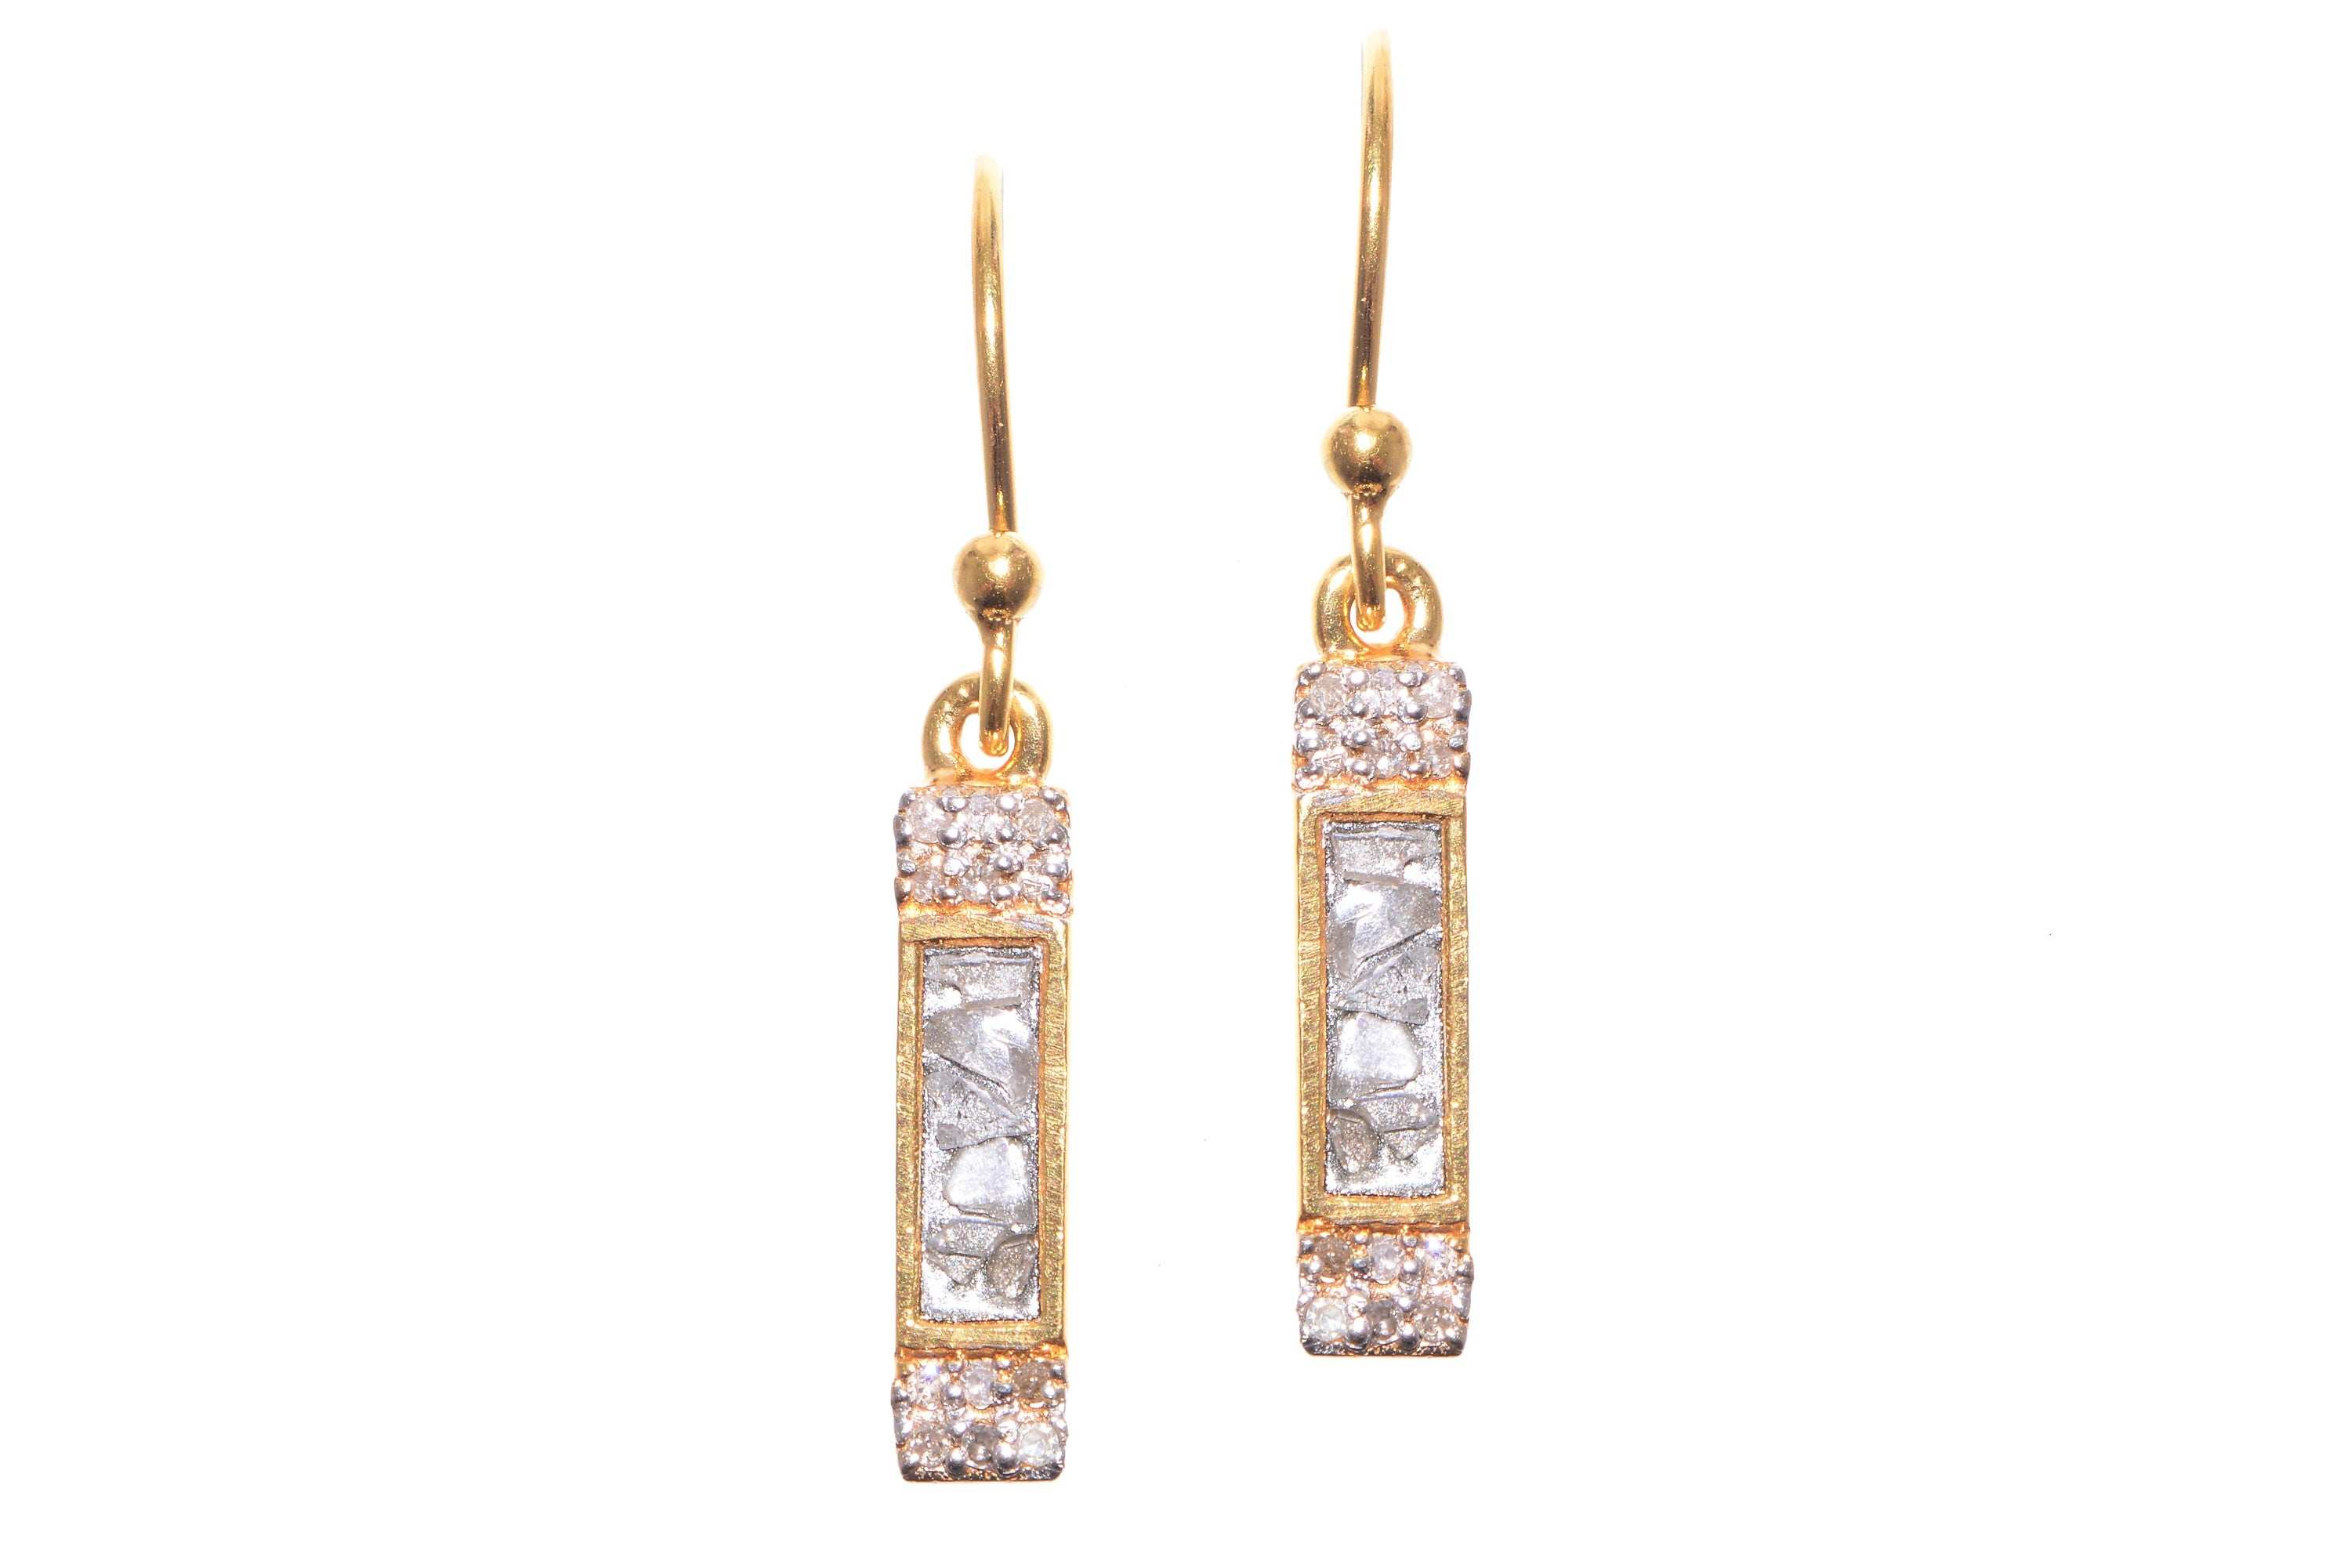 VALLETE EARRINGS